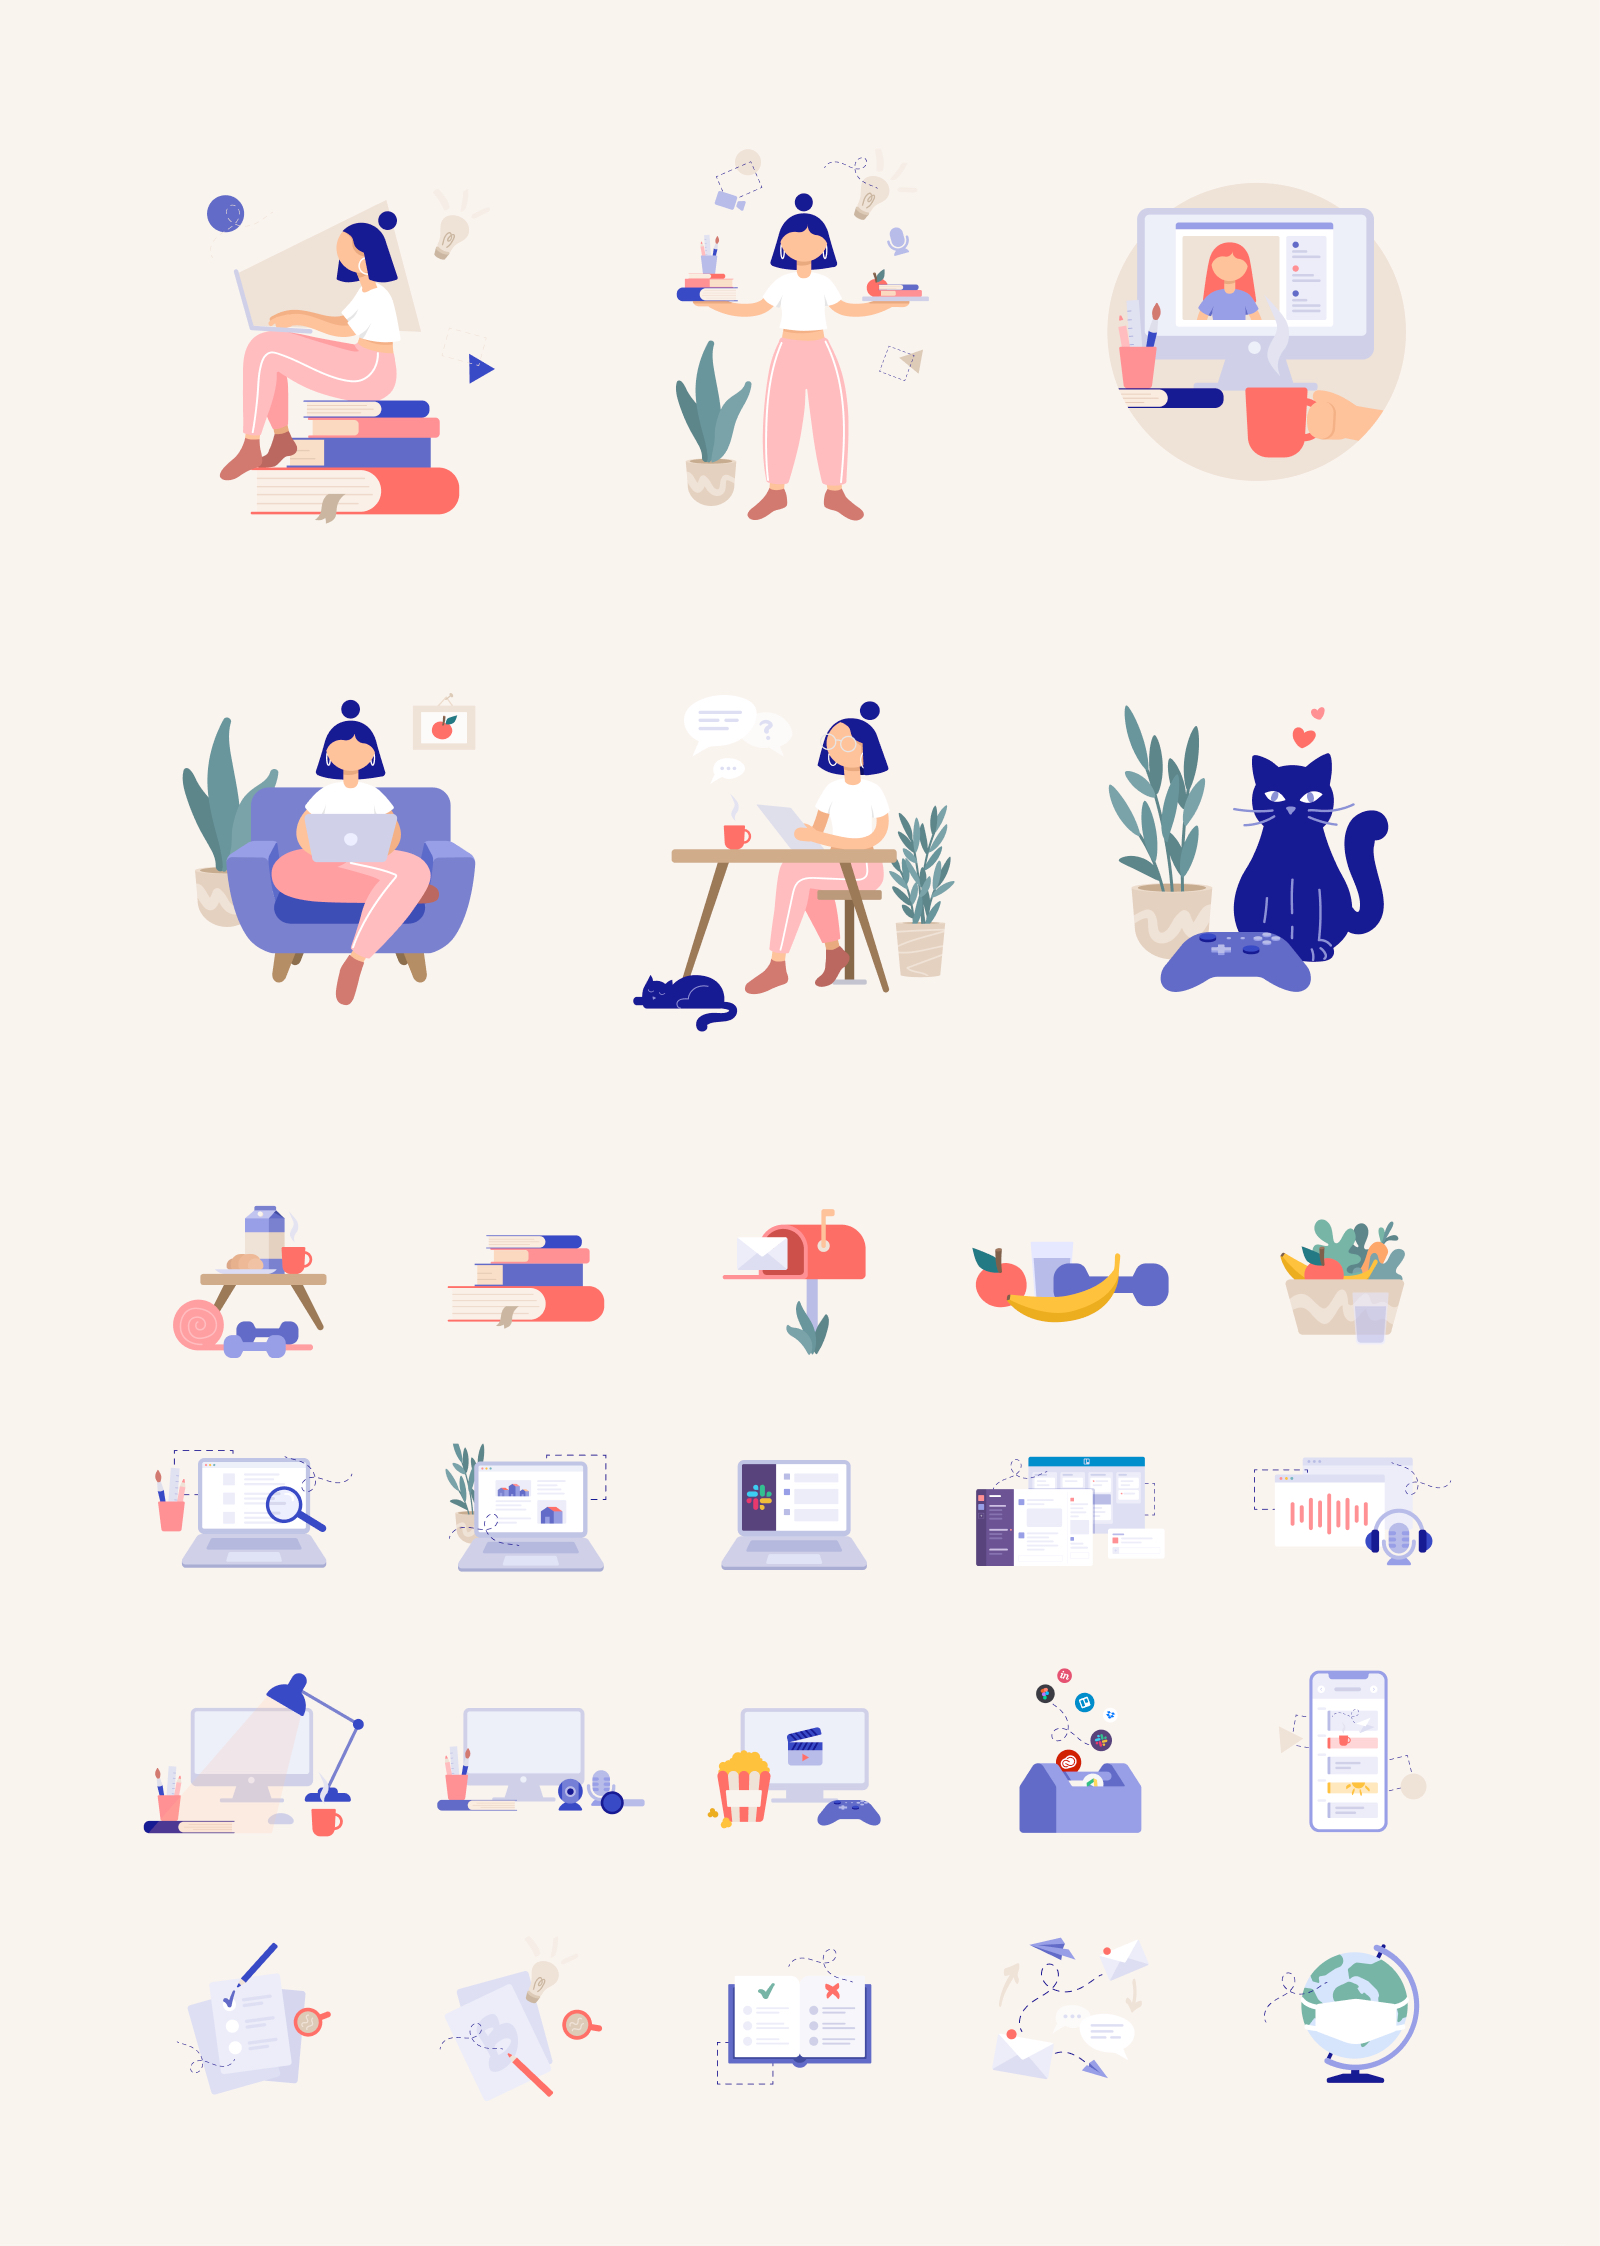 25+ Free Remote Work Illustrations - More than 25 vector illustrations in SVG, PNG, Figma and AI formats.